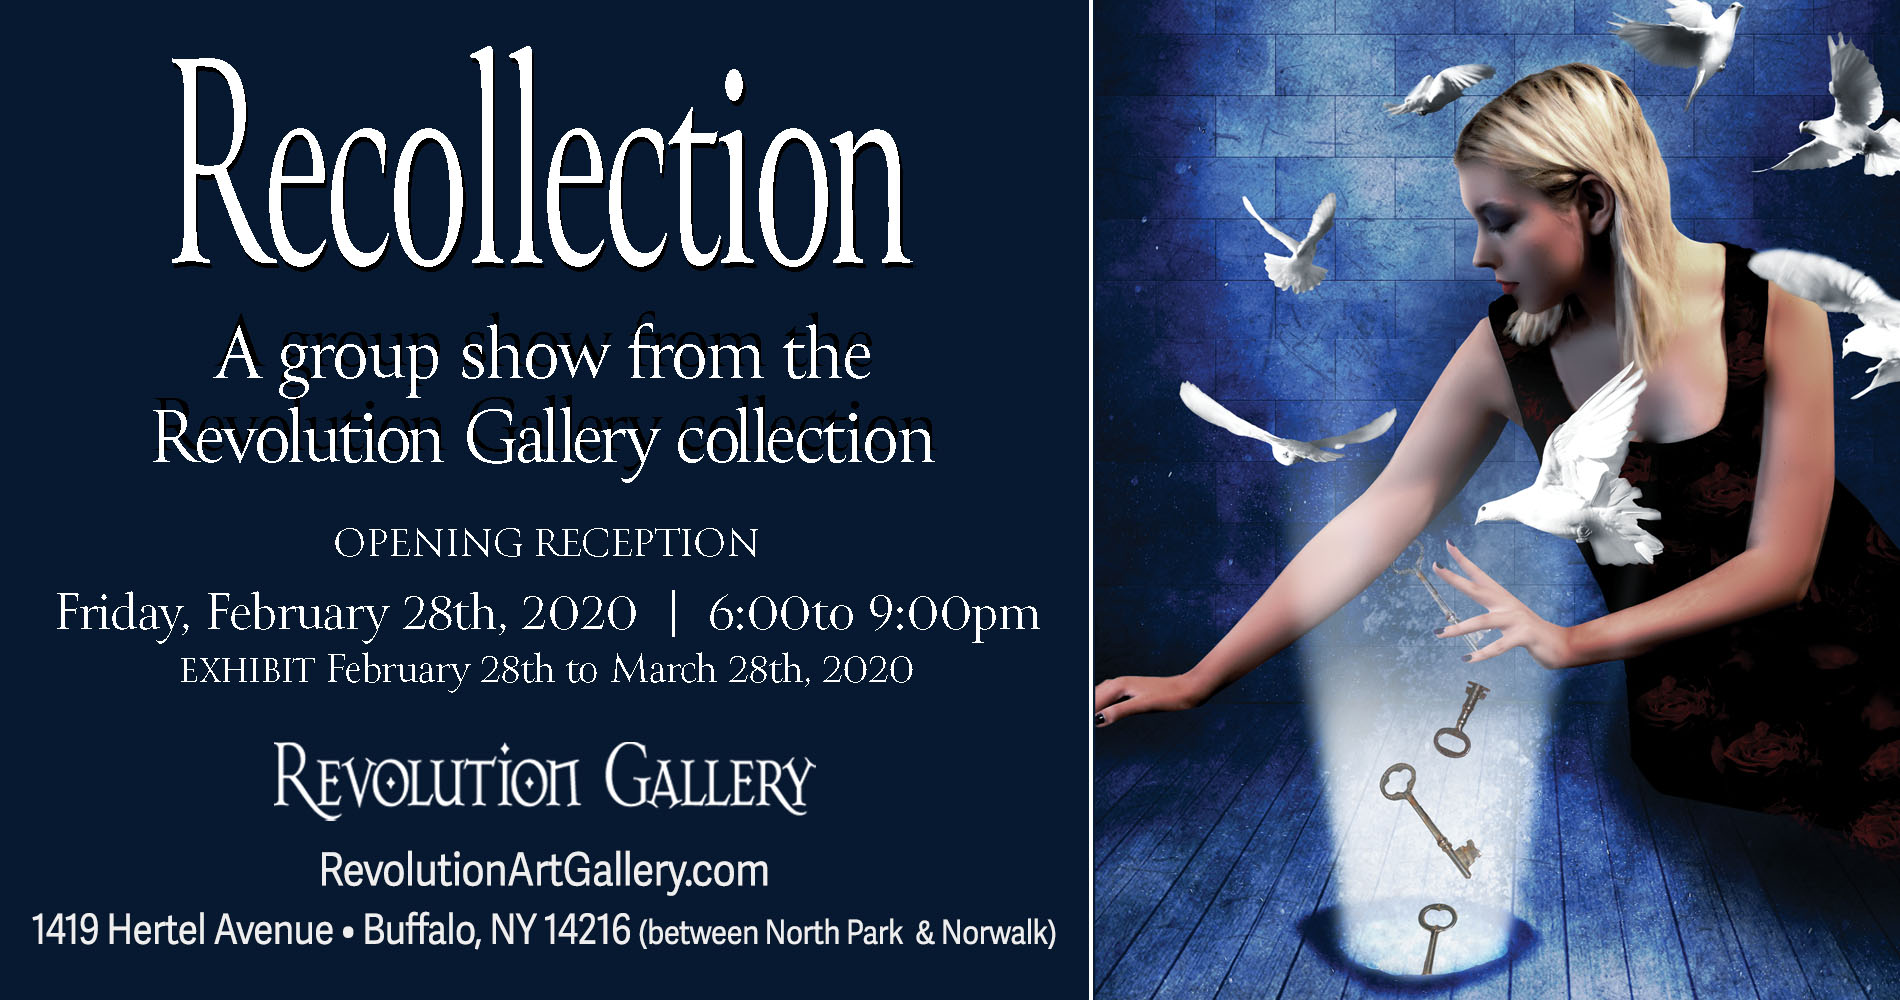 RG_RECOLLECTION_FB_BANNER